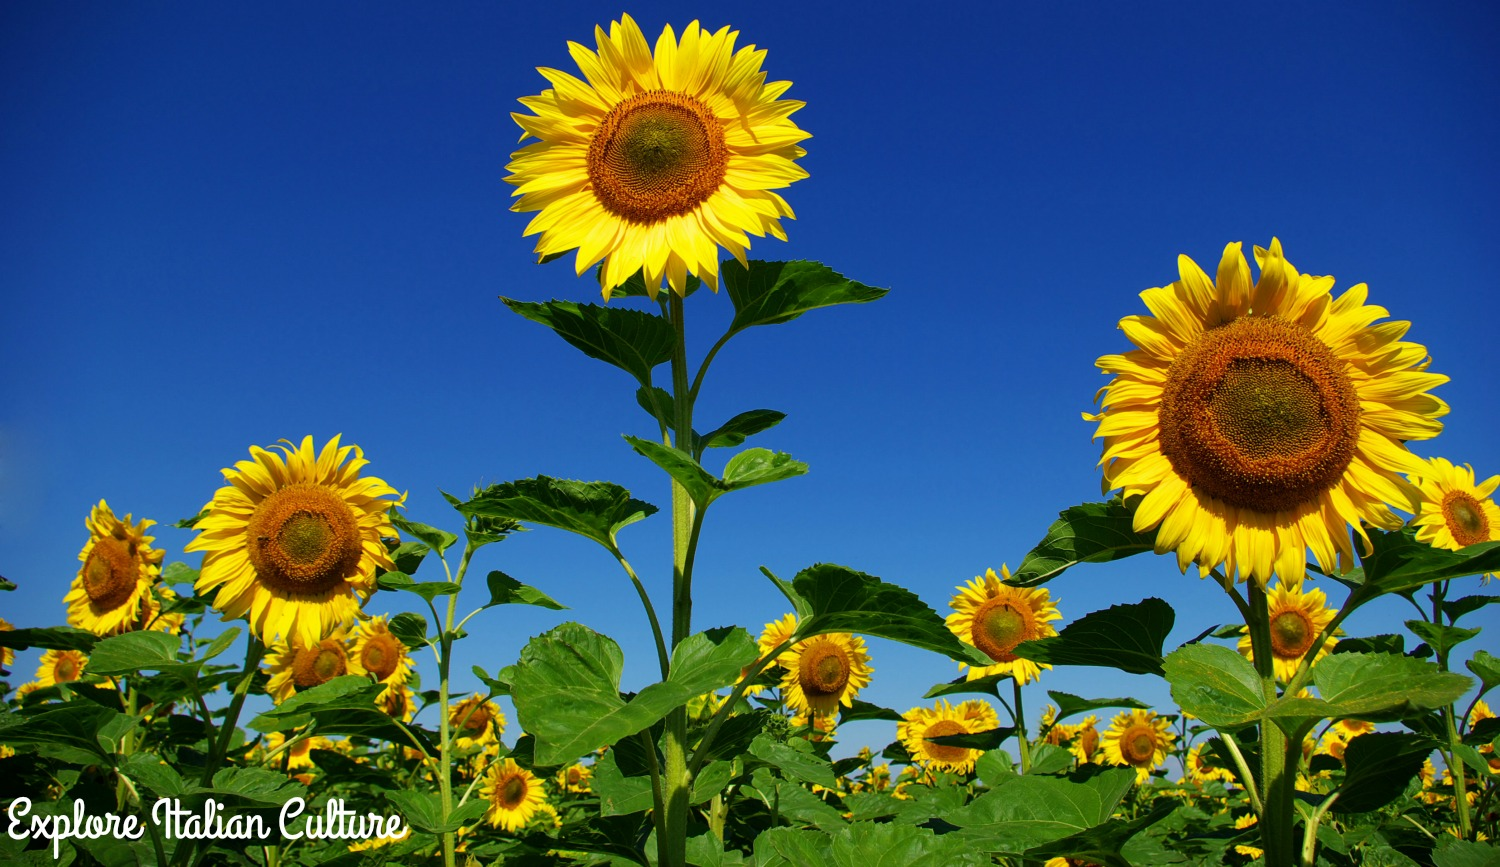 Sunflowers against blue sky.